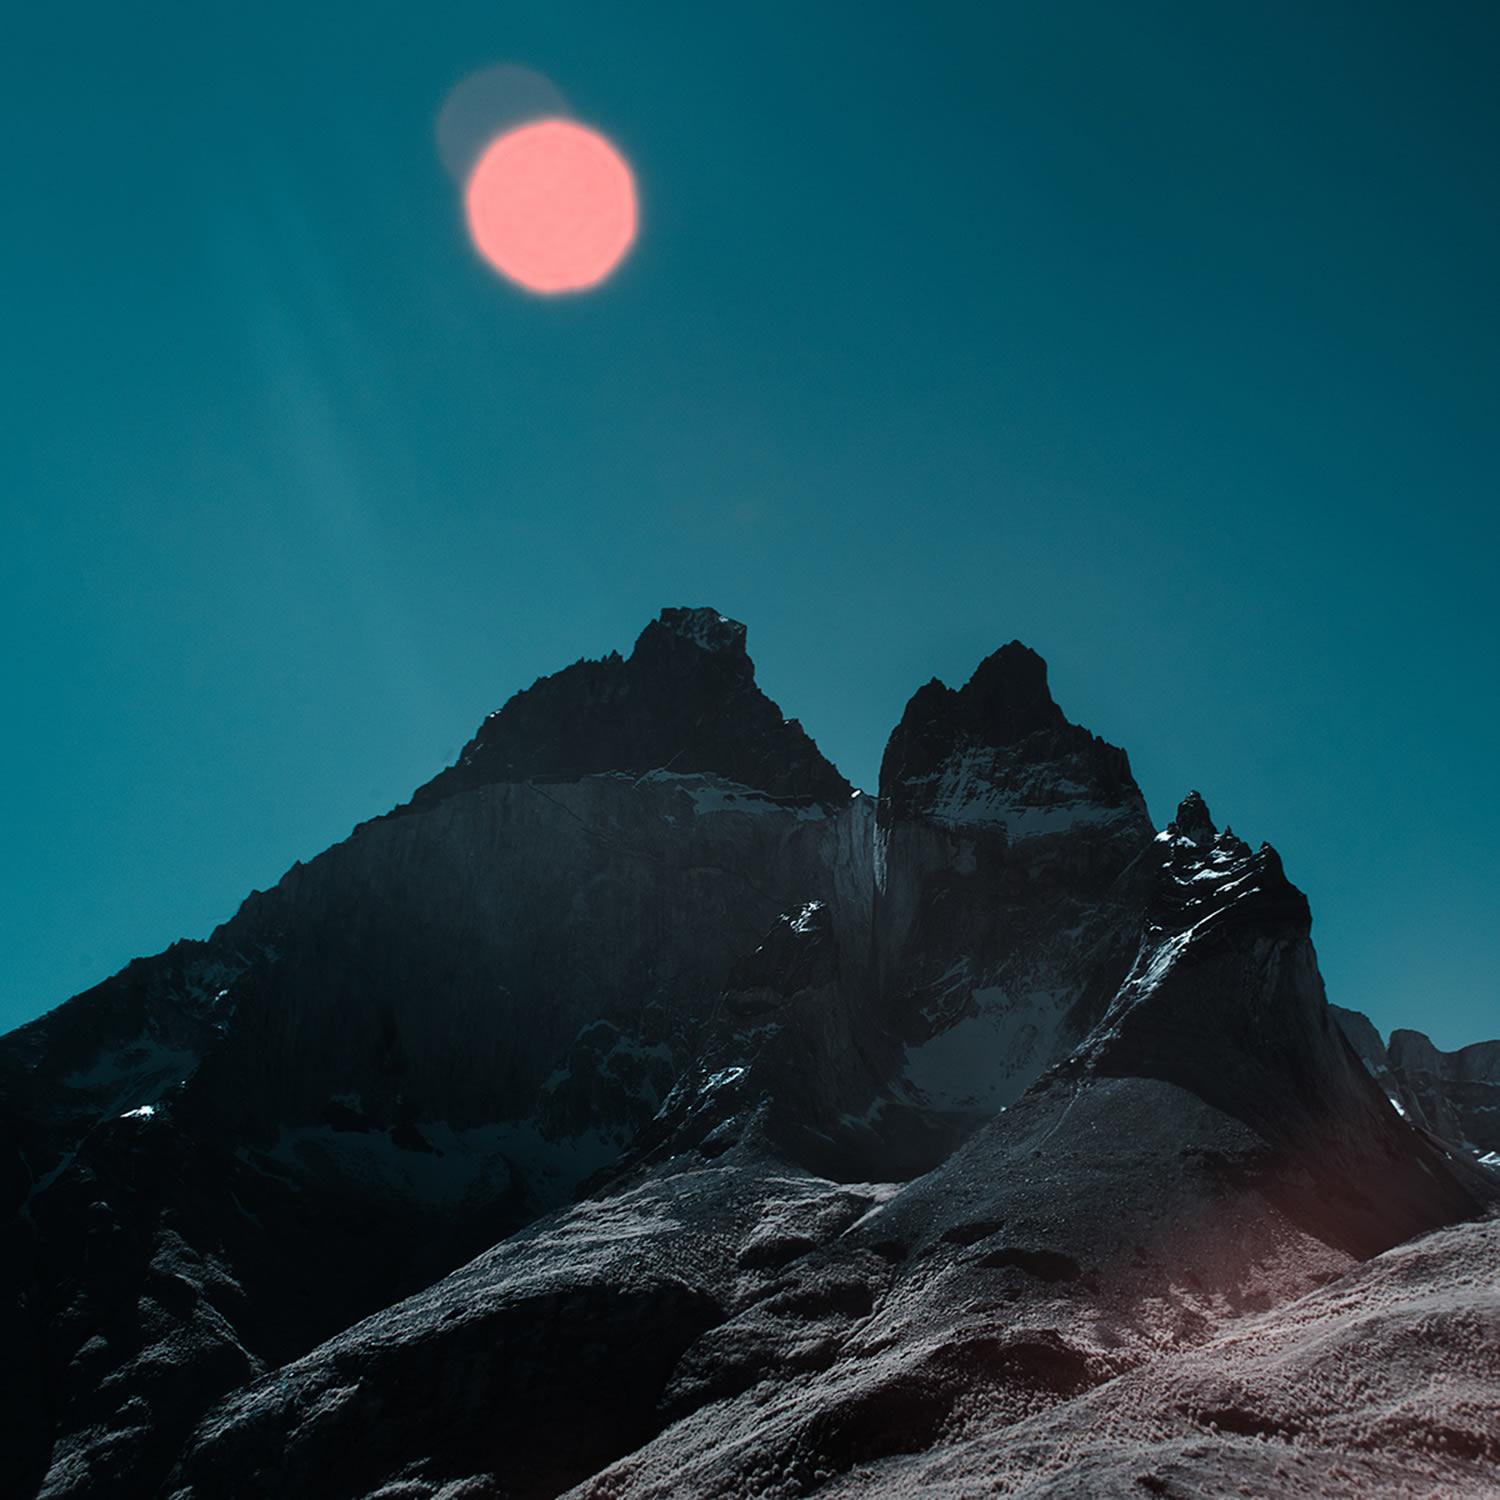 pink moon over mountains